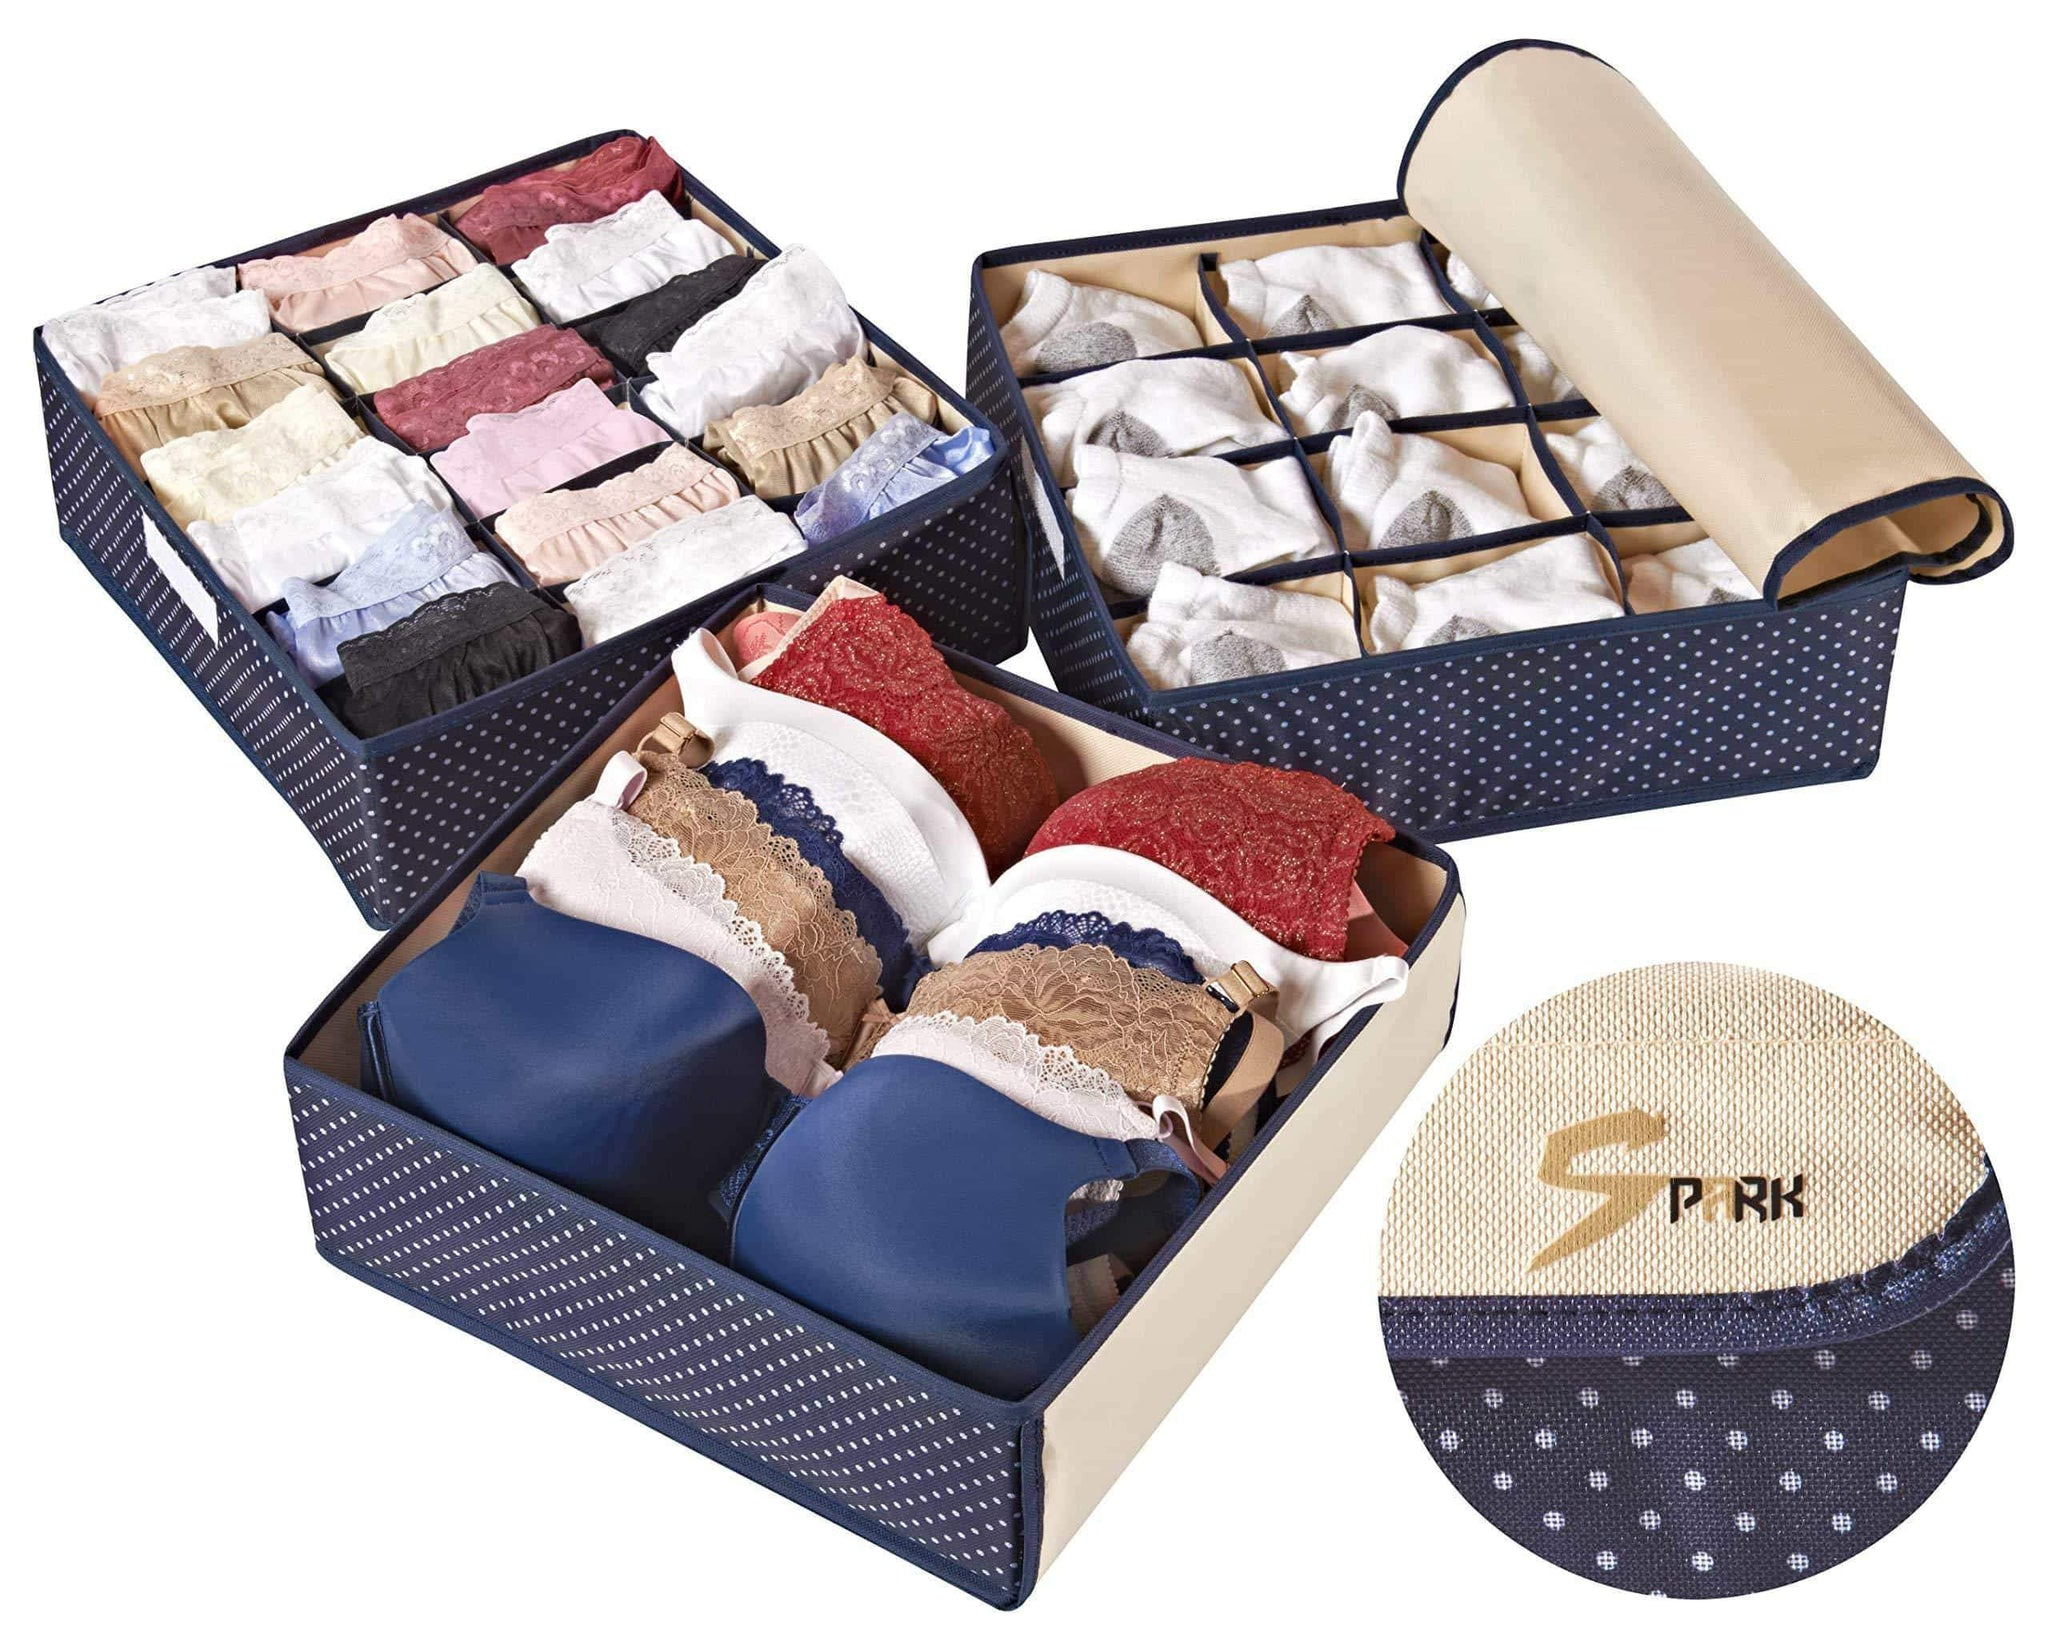 Topline Goods - Spark Premium Set of 3, Foldable, Covered Drawer Organizer, Closet Organizer for Socks, Bras for Women, Underwear, Baby Clothes, Belts, Scarves (Blue)